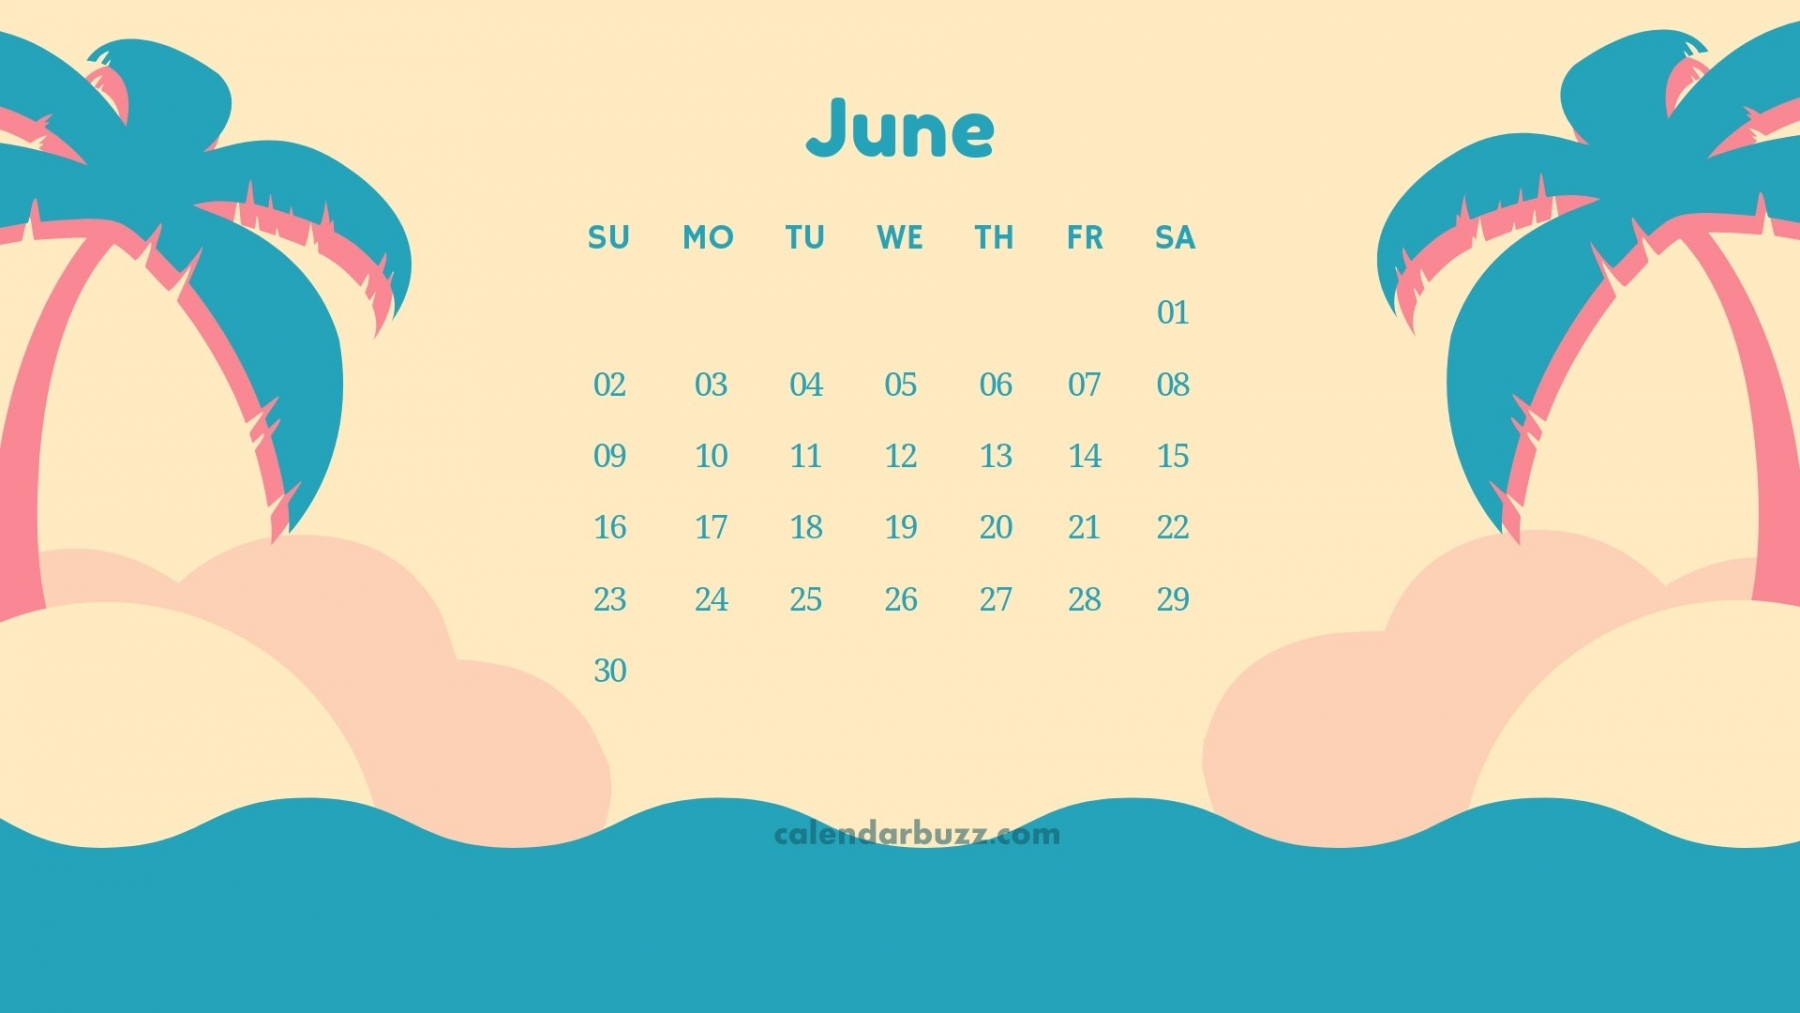 June 2019 Calendar HD Wallpapers and Background Images ...